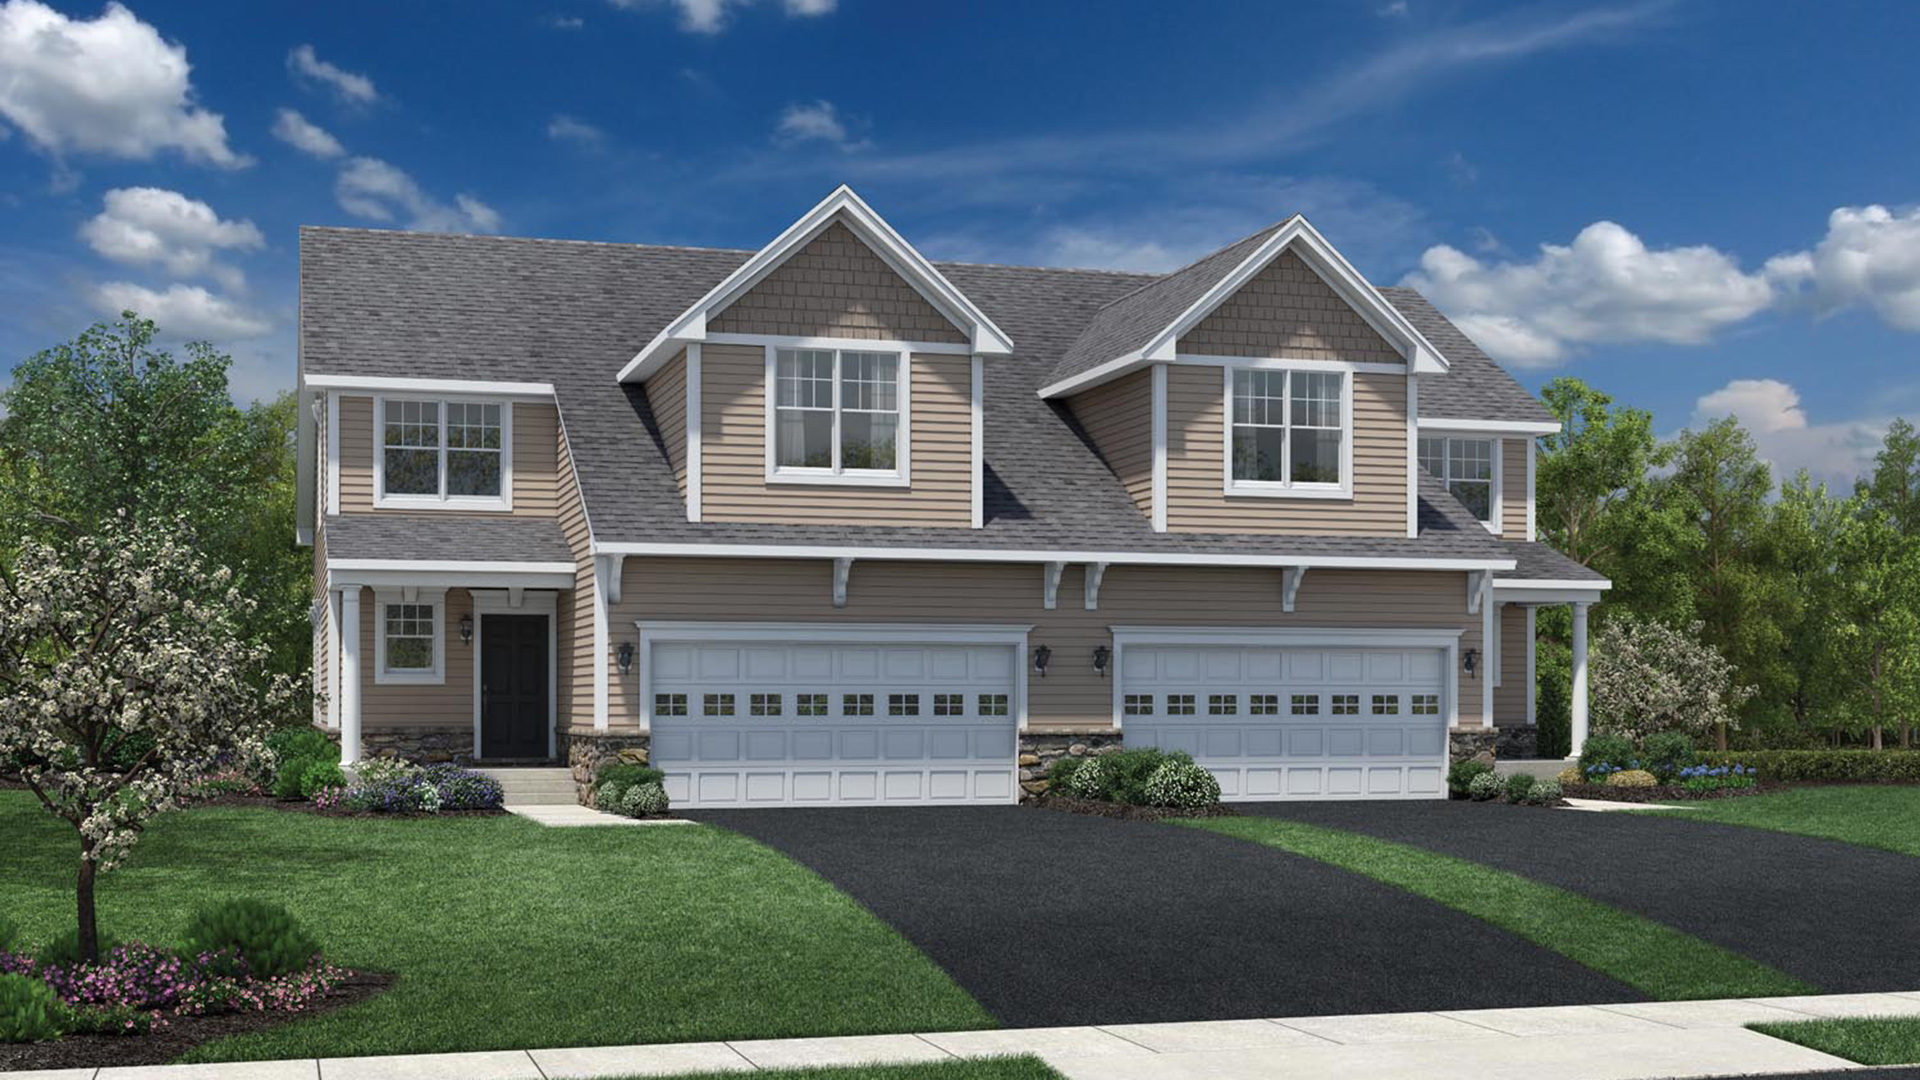 Ridgewood at middlebury the hickory elite home design for Elite home designs